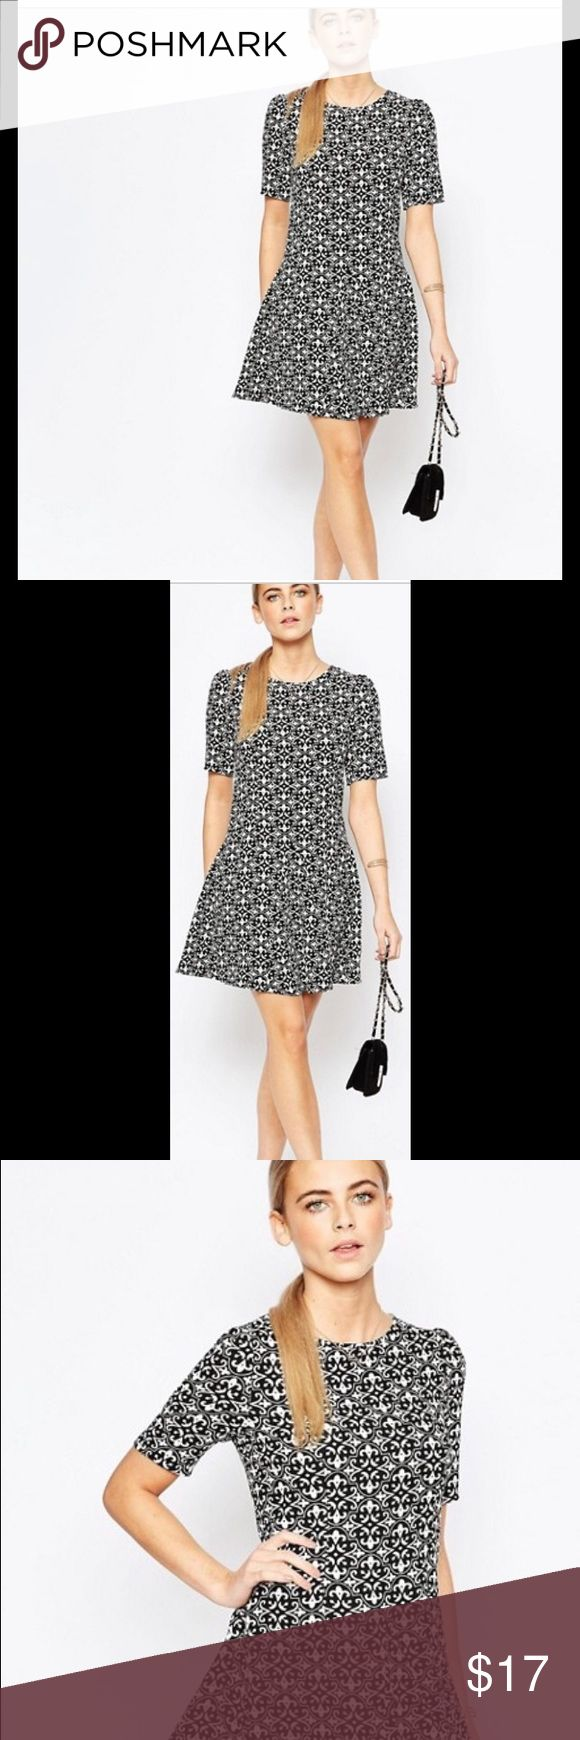 "ASOS Fashion Union Flippy Dress in Mono Print US 6 Never worn, Only tried on, Flawless ASOS Dress...Fashion Union 'Flippy' Dress in Mono Print. NOW, Completely out of stock on ASOS.com Short Sleeve, back Zipper, Very Flattering above-knee Dress in a Black & White Damask look pattern! I thicker-woven 100% Polyester. US S/6 Perfect for a Luncheon or any day wear! Length is 34"" Bust, across: 19"" with minimal ""give"" Fabric is a substantial poly. not at all stretchy. ASOS Fashion Union Dresses…"